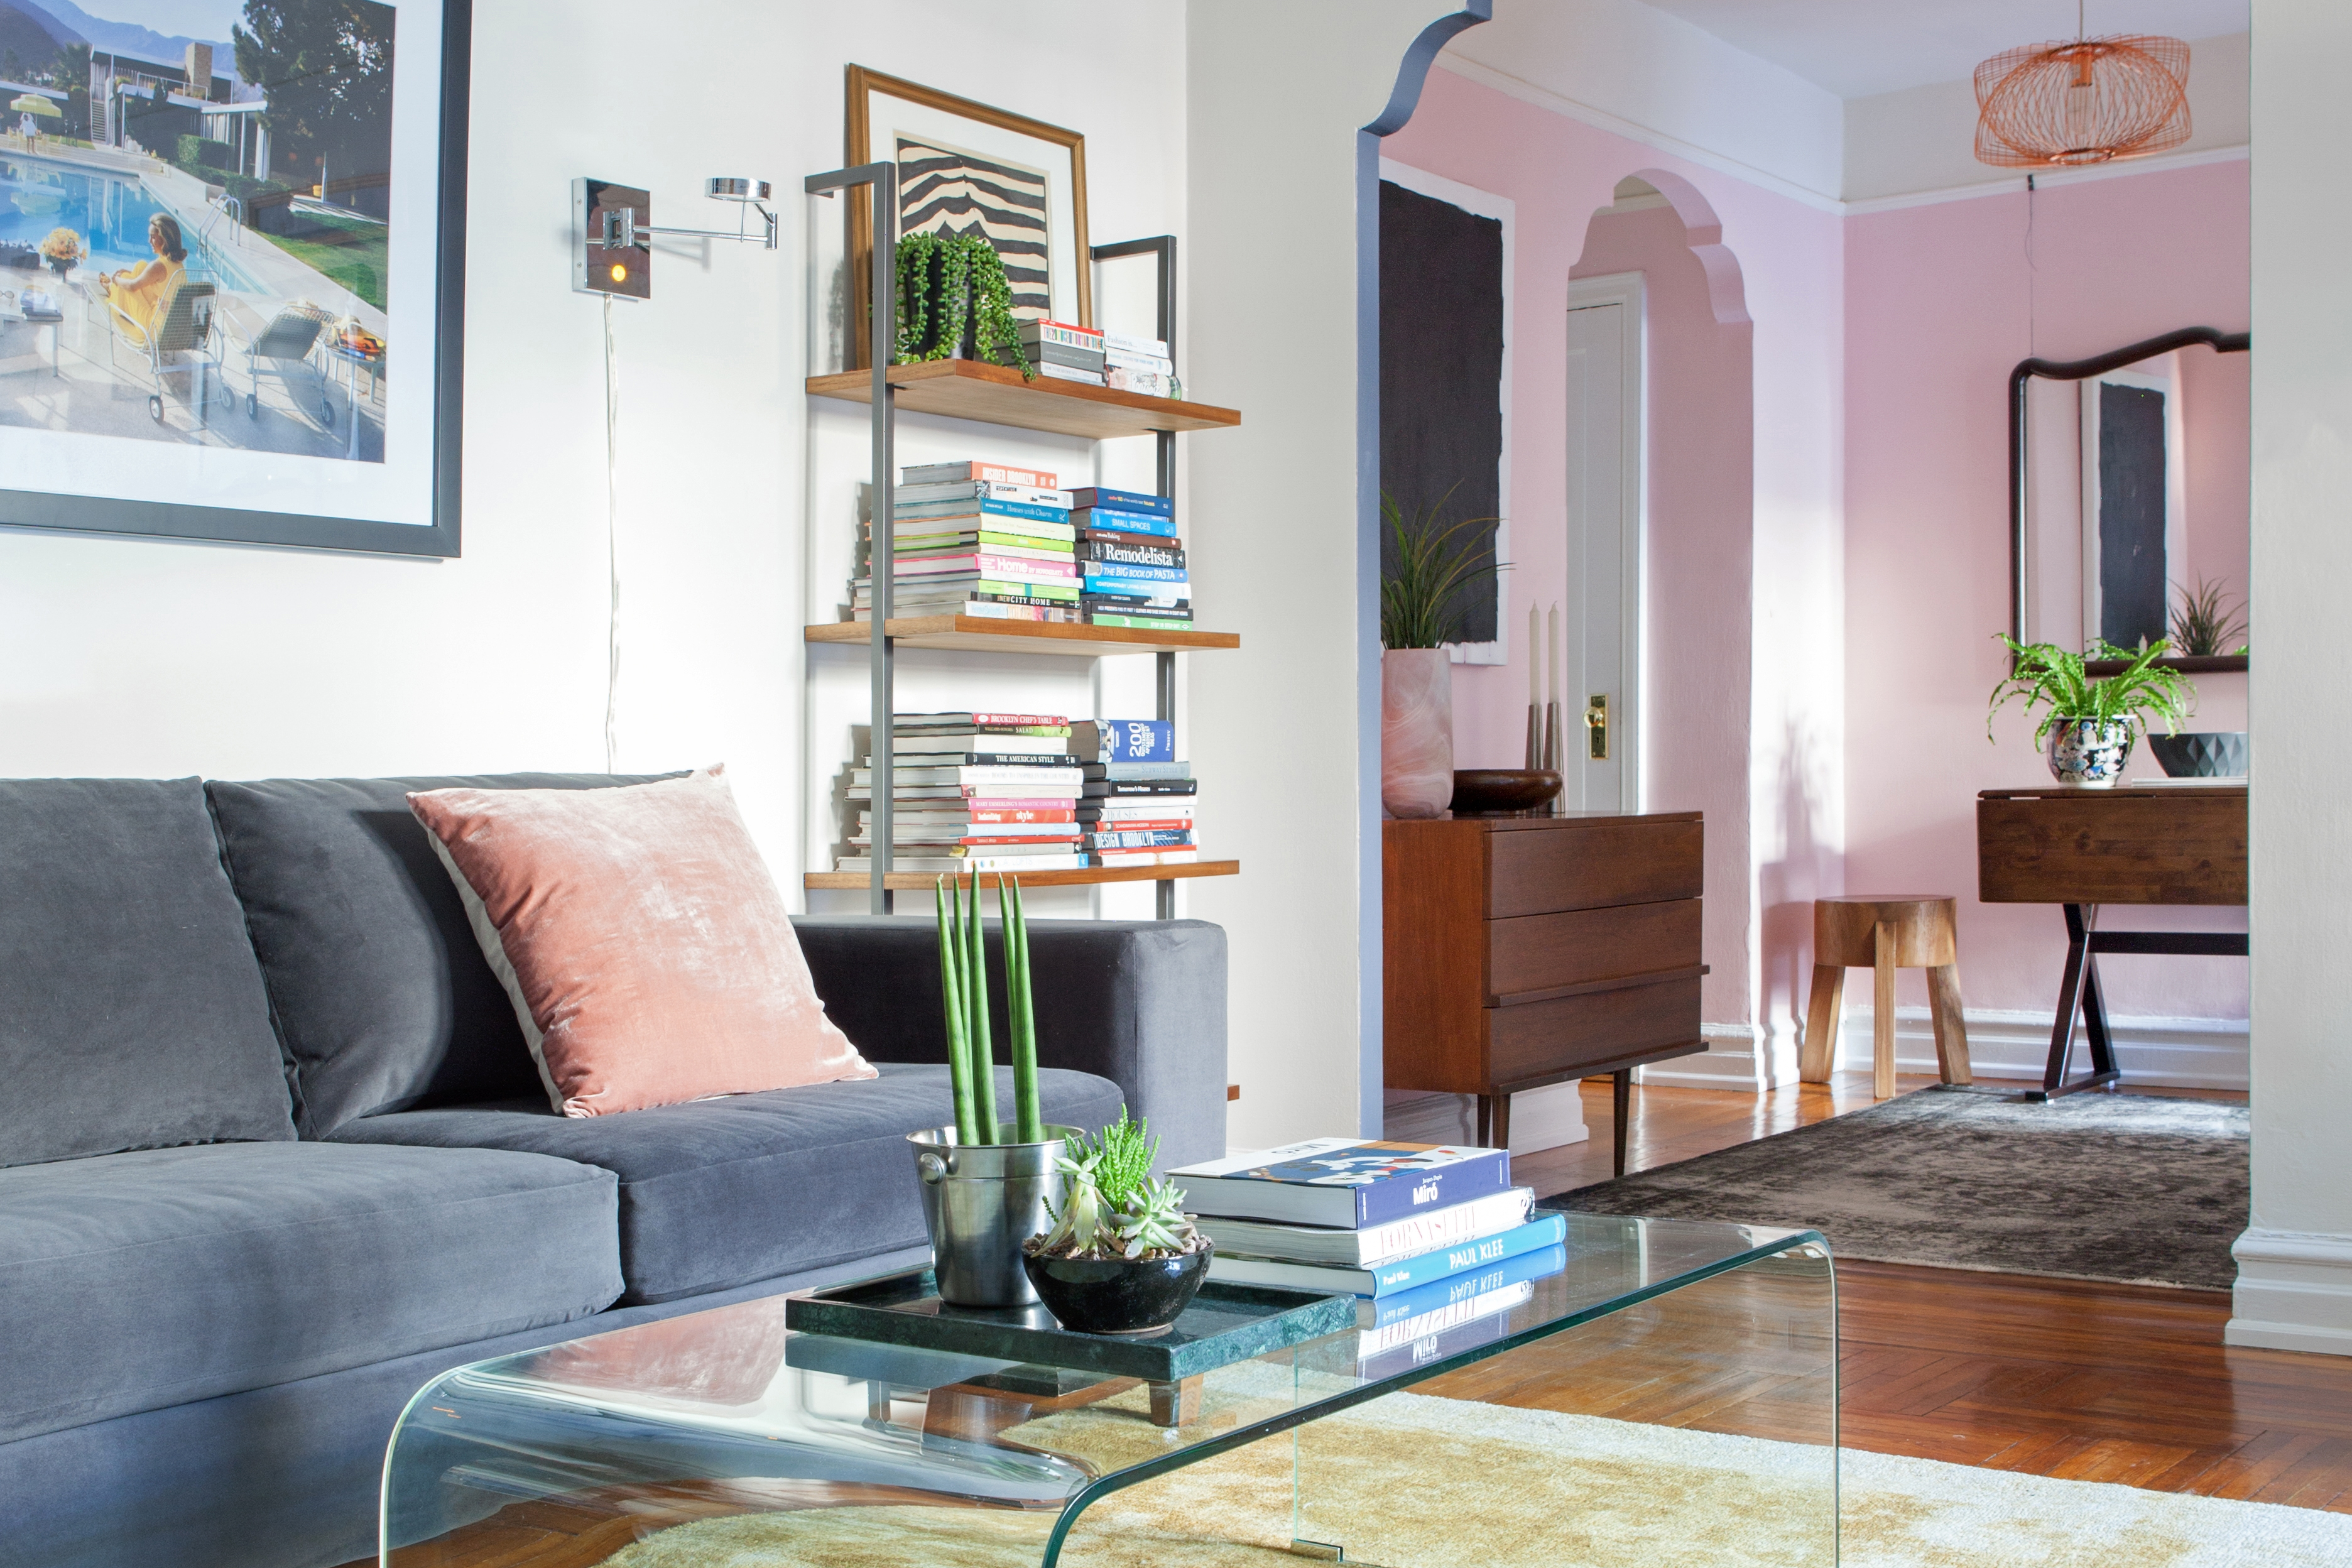 Design Experts Share Their Favorite Coffee Table Books By Bipoc Authors Apartment Therapy